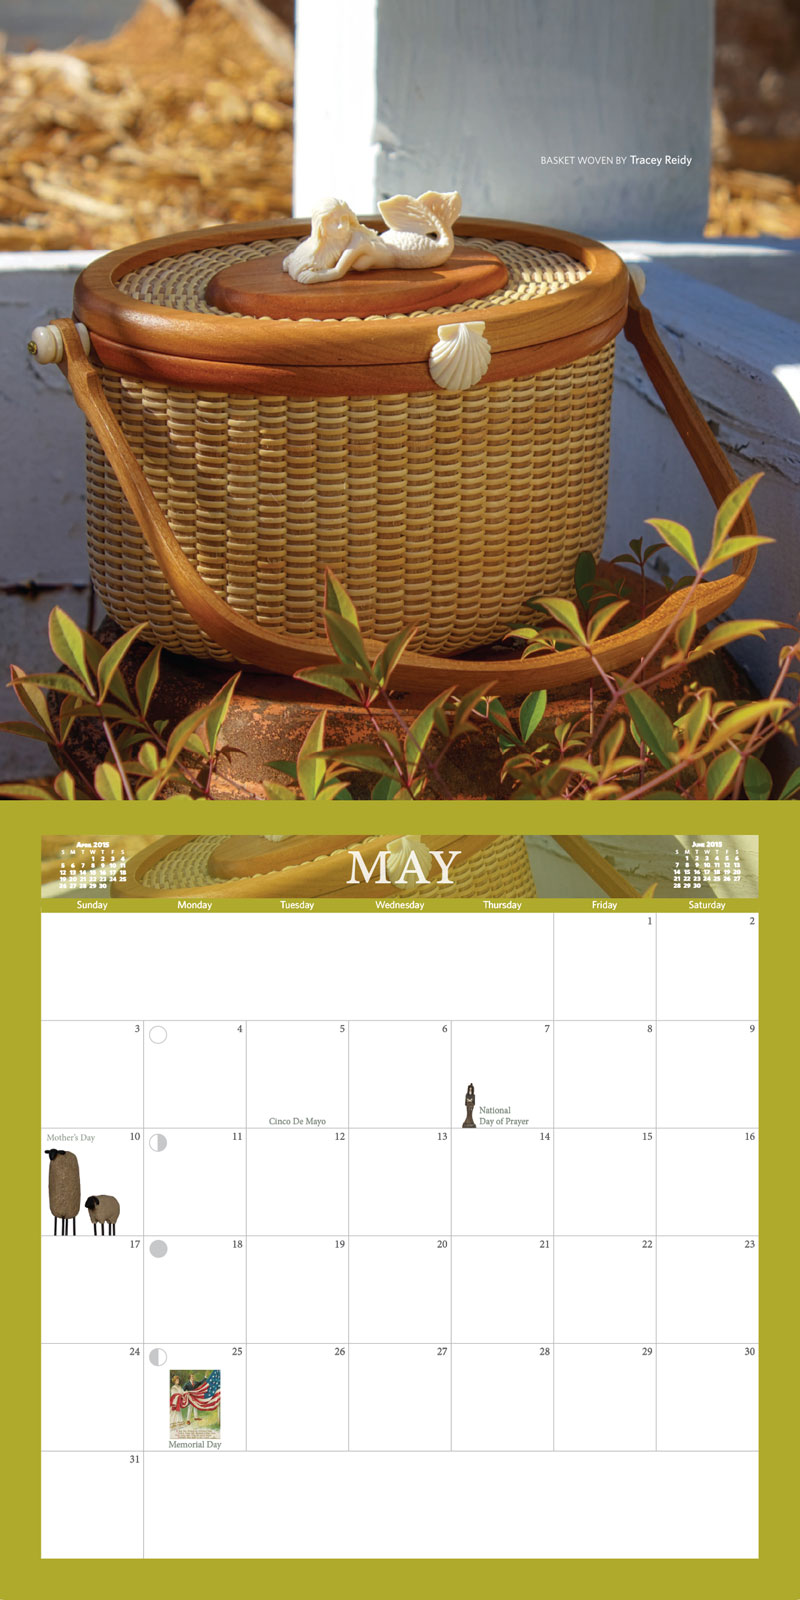 Calendar Girl May : Better late than sorry may s calendar girl miss tracey